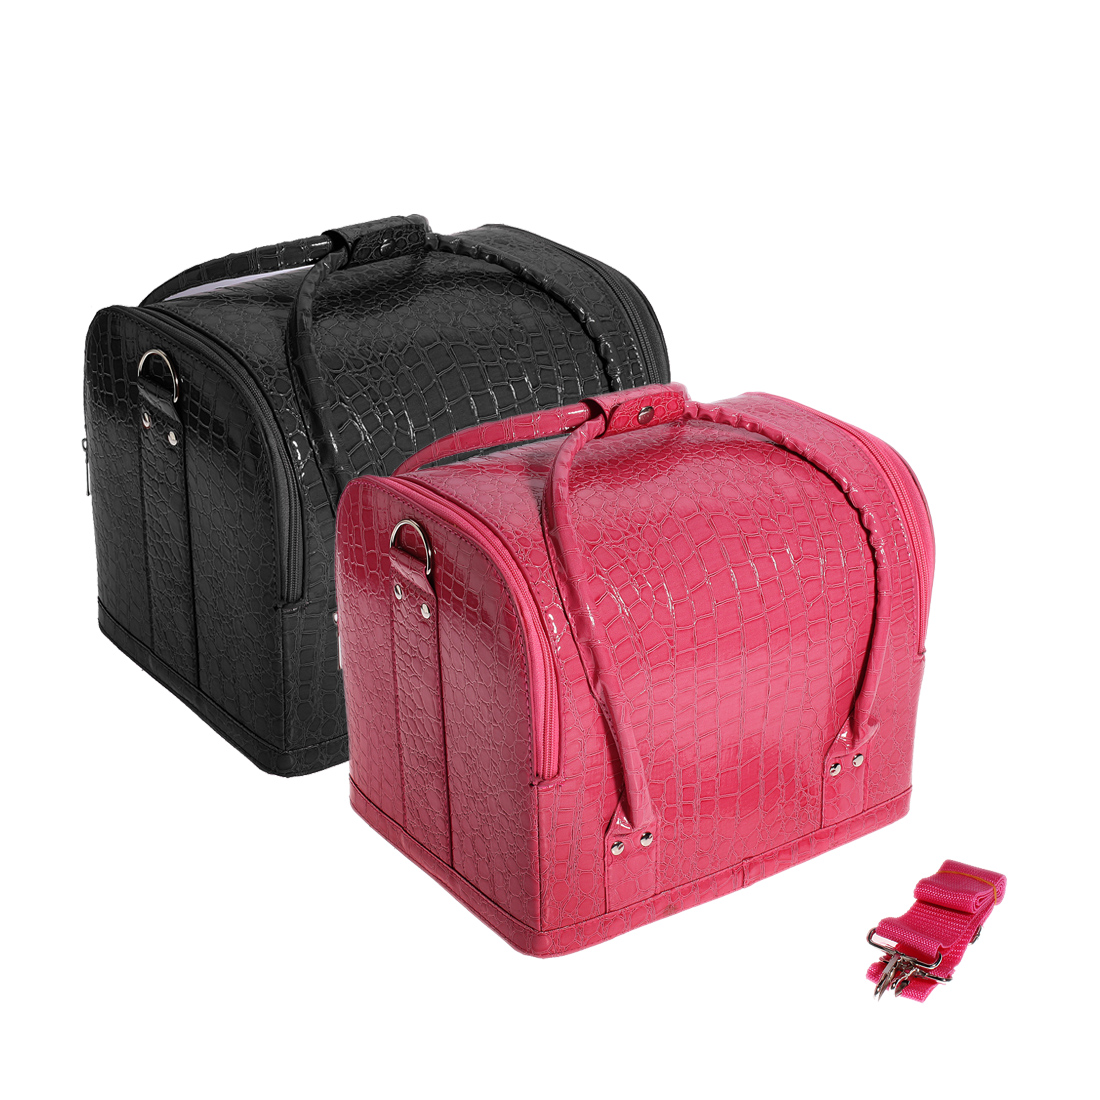 gro travelite kosmetikkoffer schminkkoffer beauty case koffer tasche makeup uk ebay. Black Bedroom Furniture Sets. Home Design Ideas